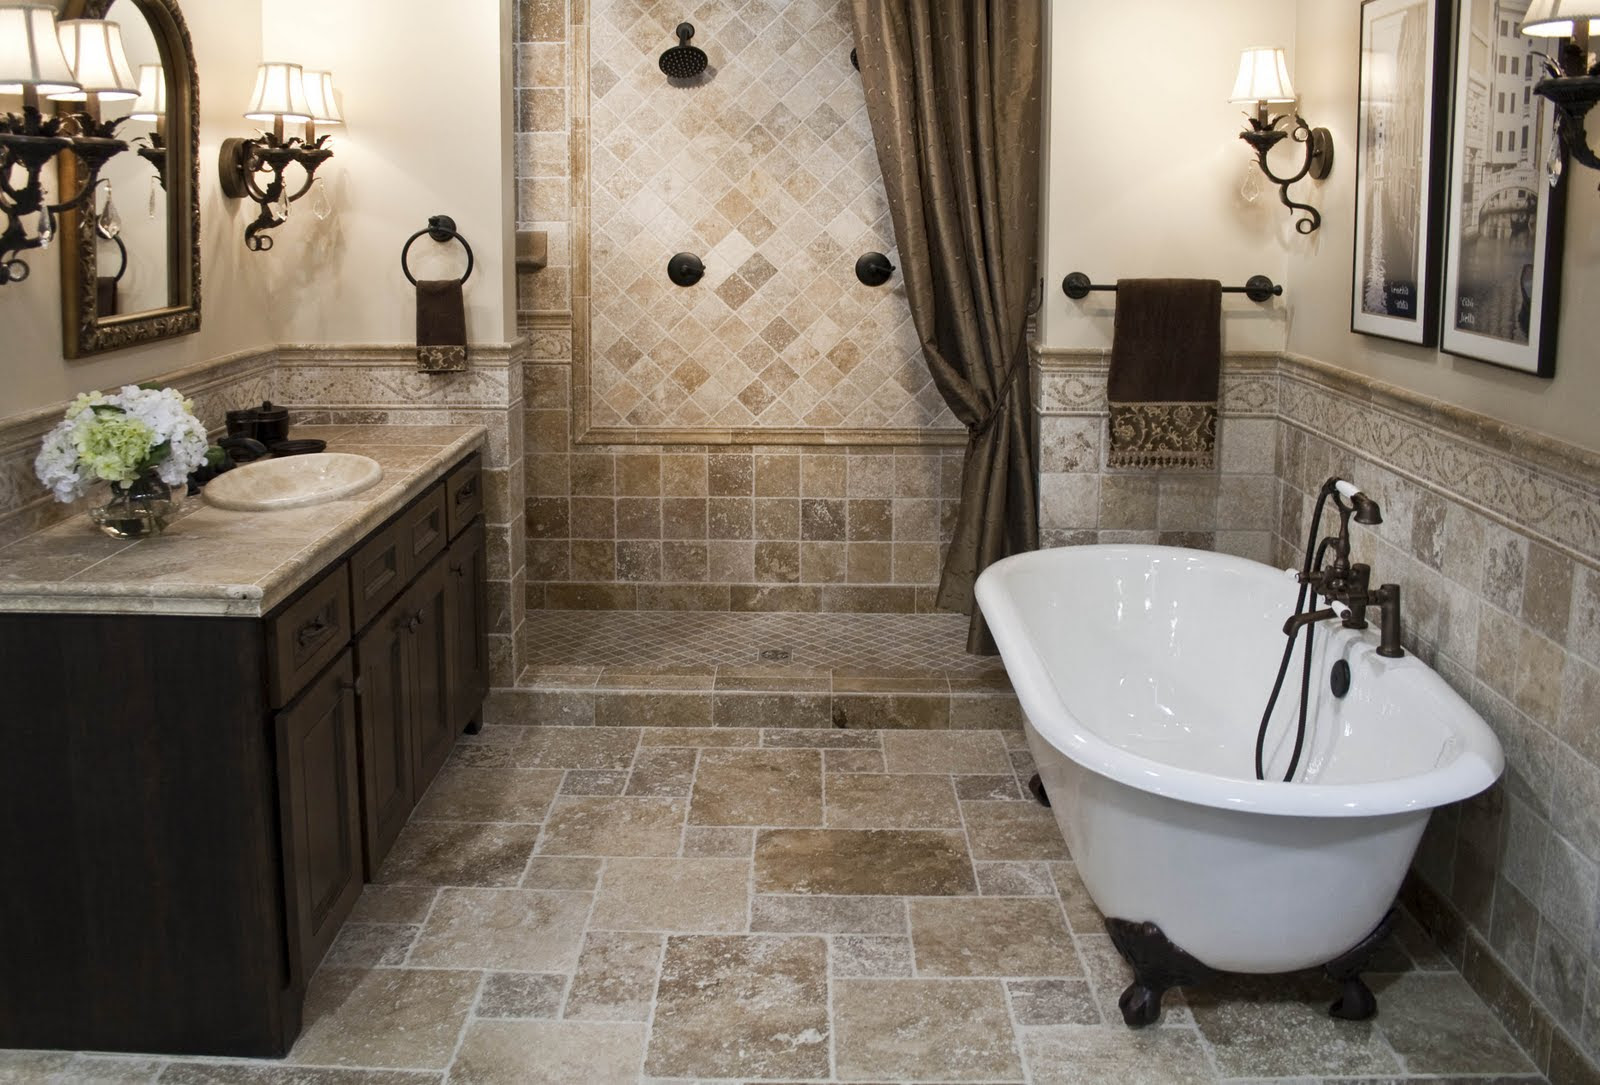 The Top 20 Small Bathroom Design Ideas for 2014 - Qnud